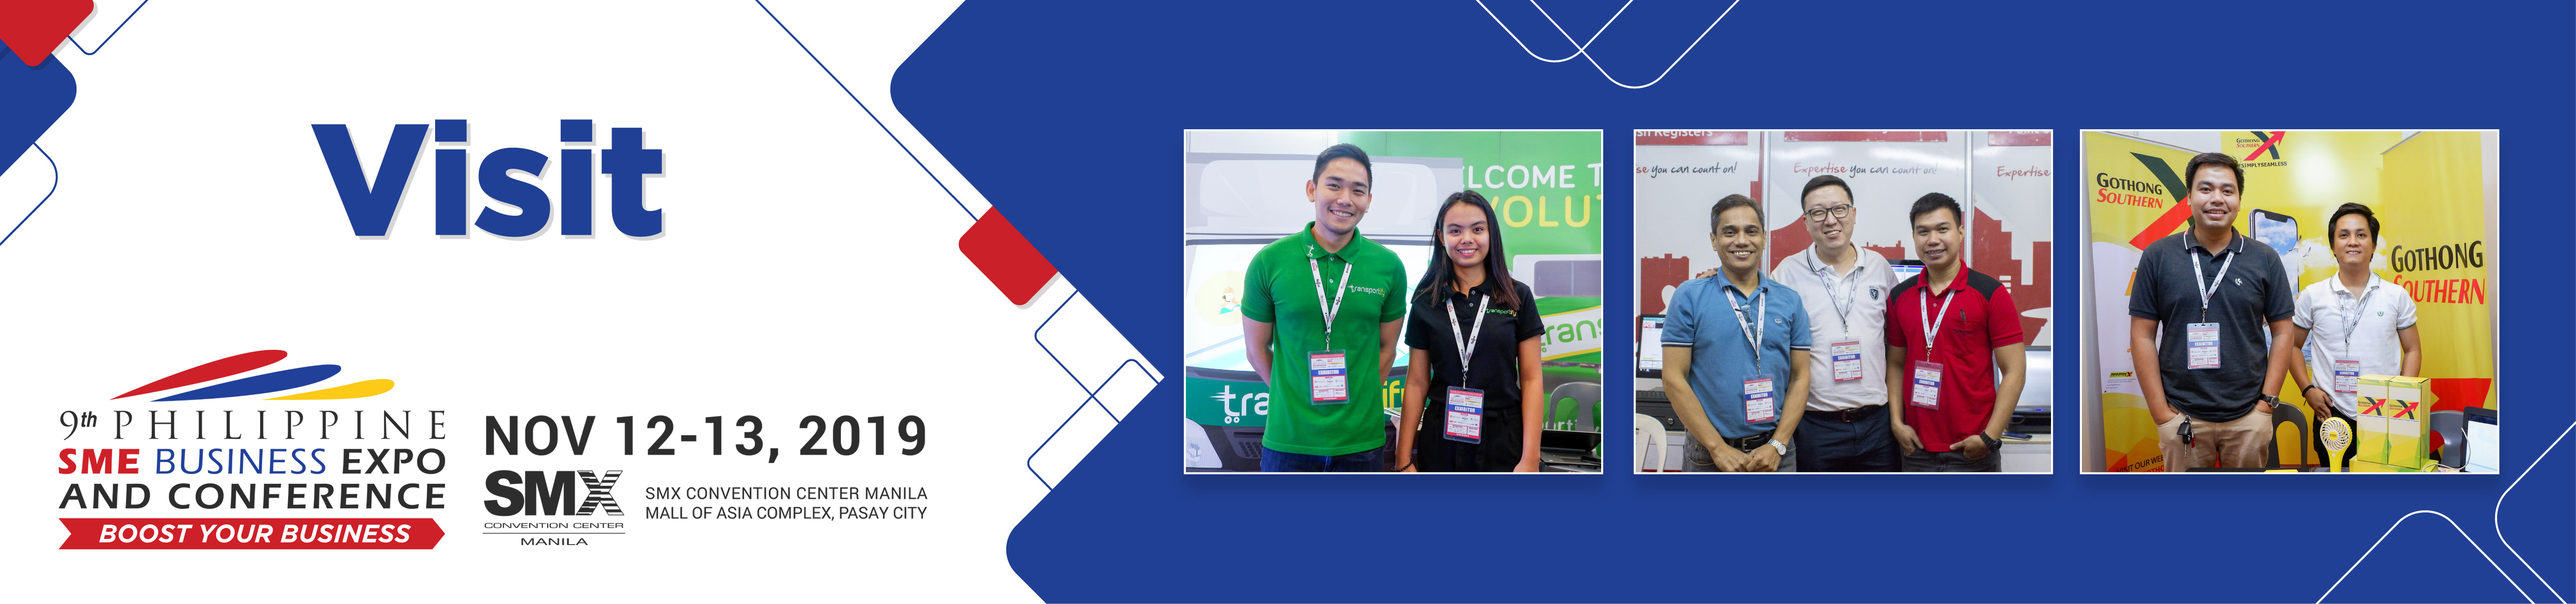 Visit Us | 9th Philippine SME Business Expo 2019